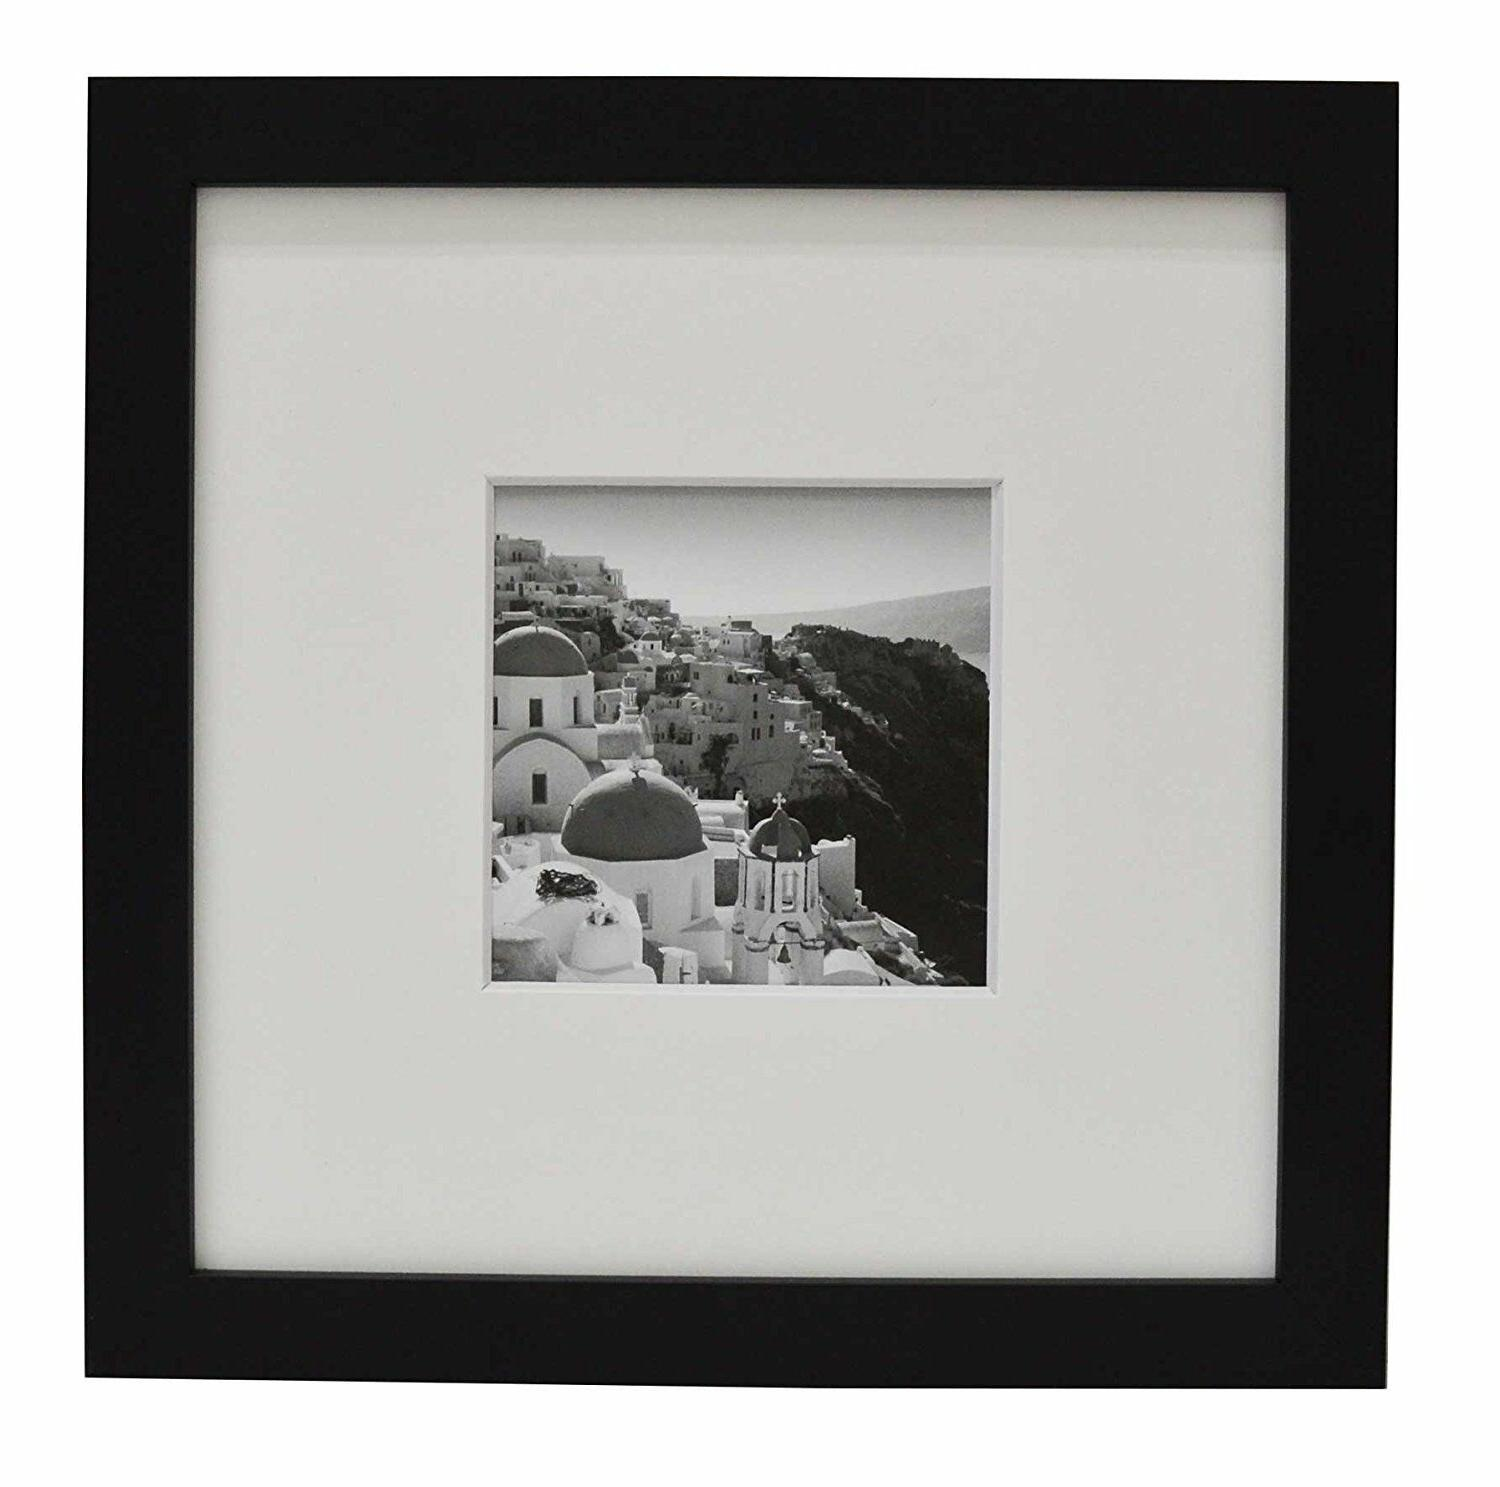 smartphone instagram frame collection 8x8 inch square